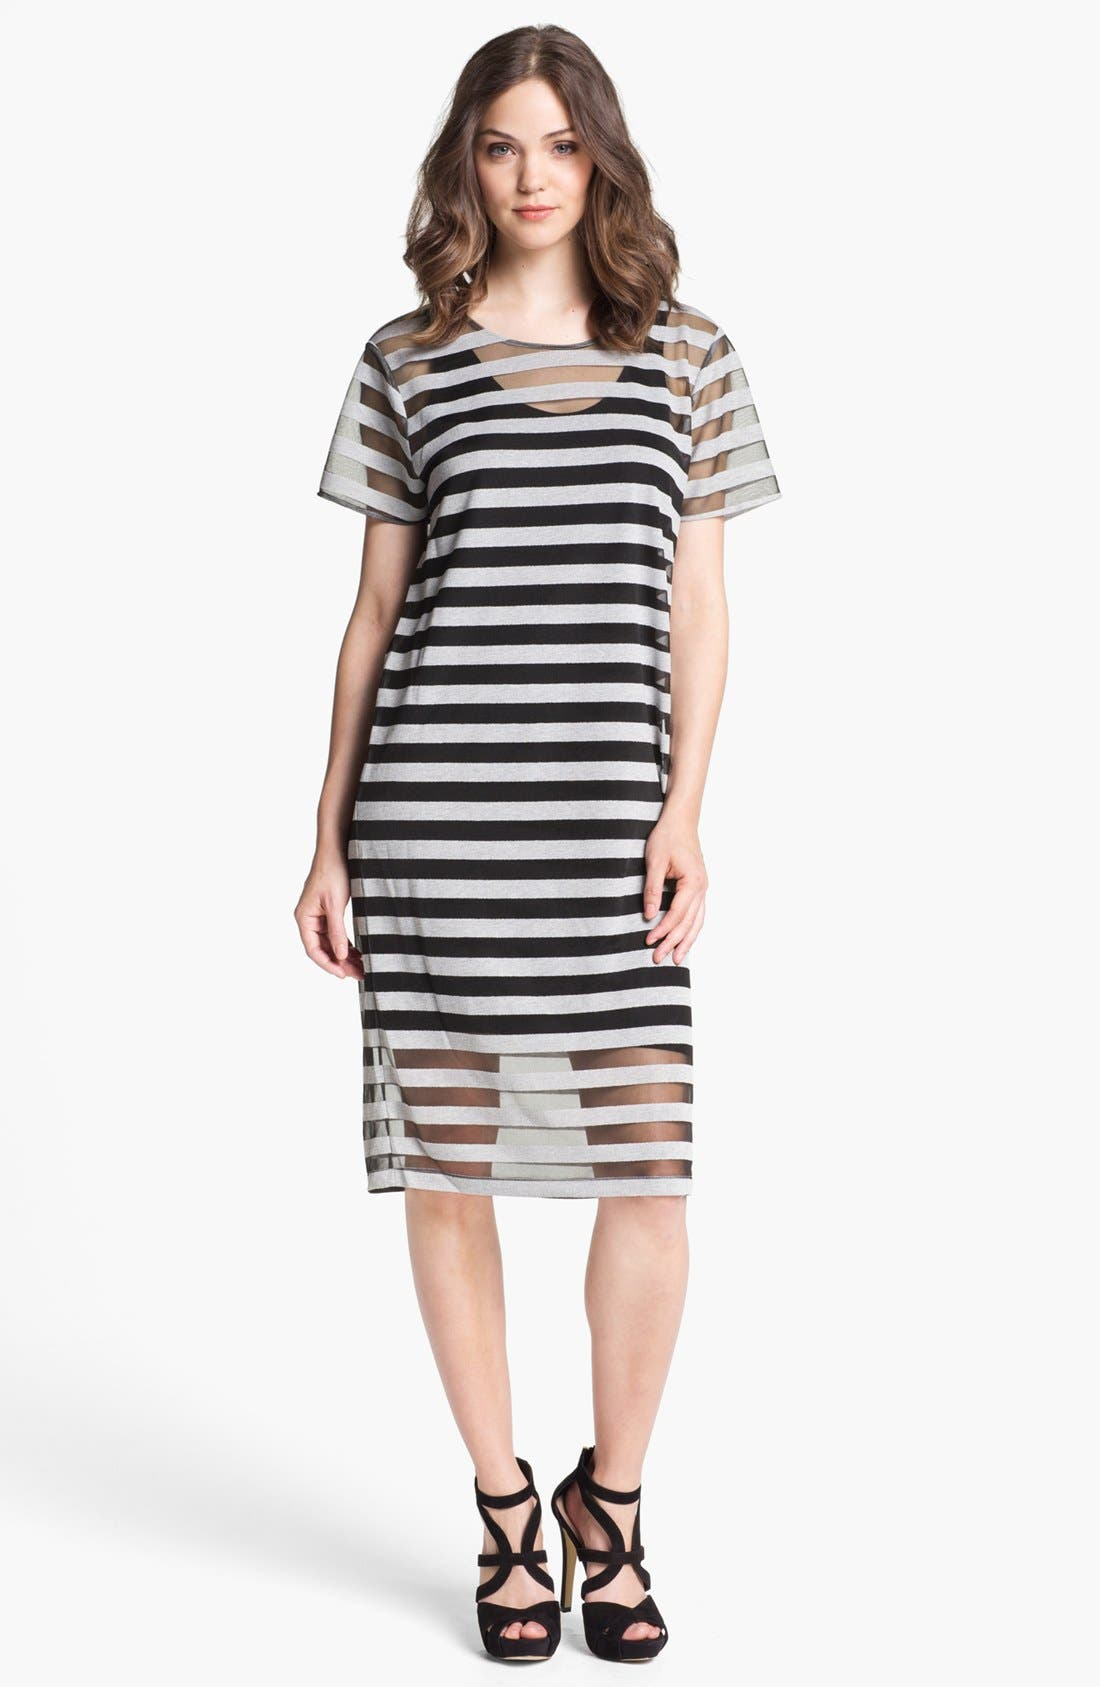 Alternate Image 1 Selected - Kenneth Cole New York 'Avery' Dress